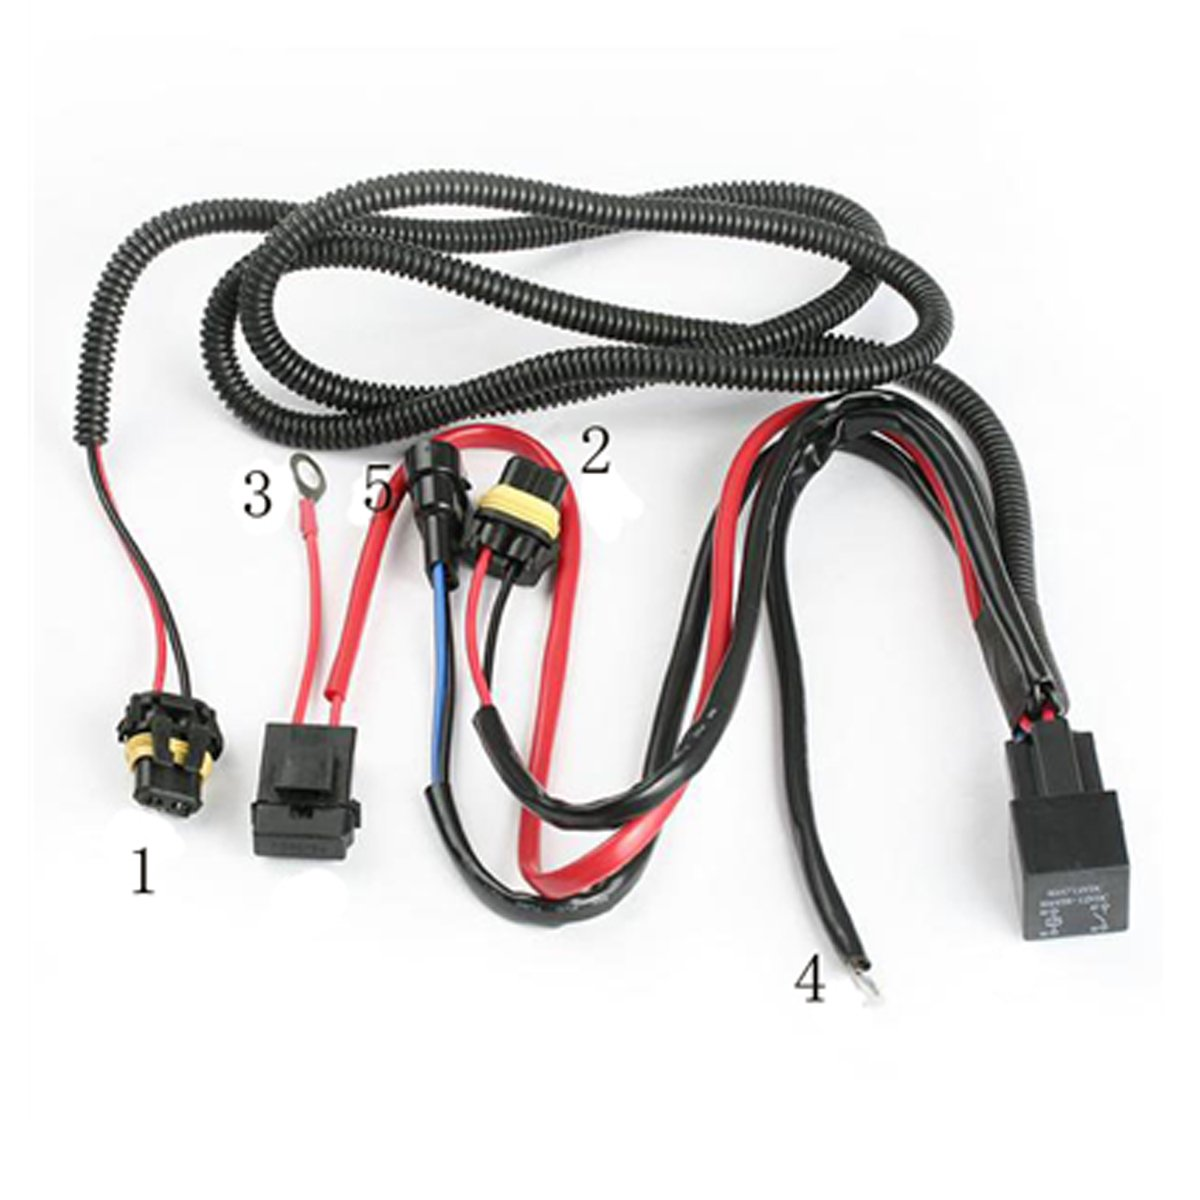 Headlight Wiring Relay Kit Howto Install Hid 2004 To 2016 Mazda 3 Forum And Mazdaspeed Forums